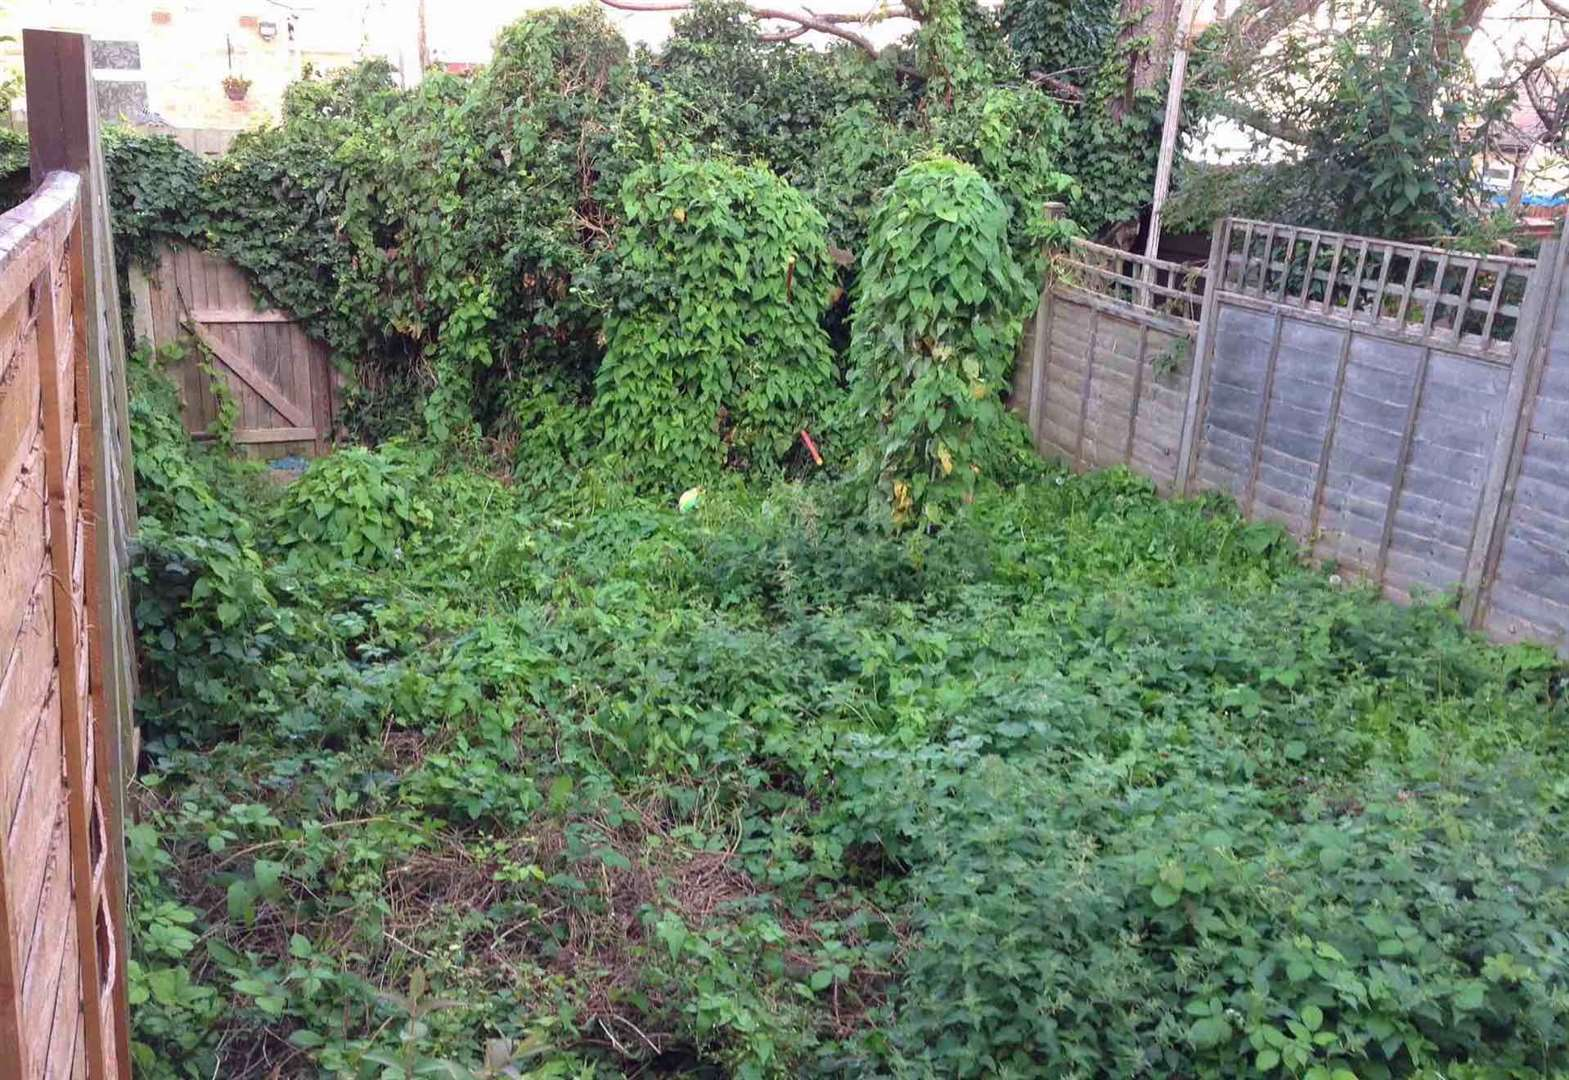 Thousands of pounds fine issued for untidy gardens